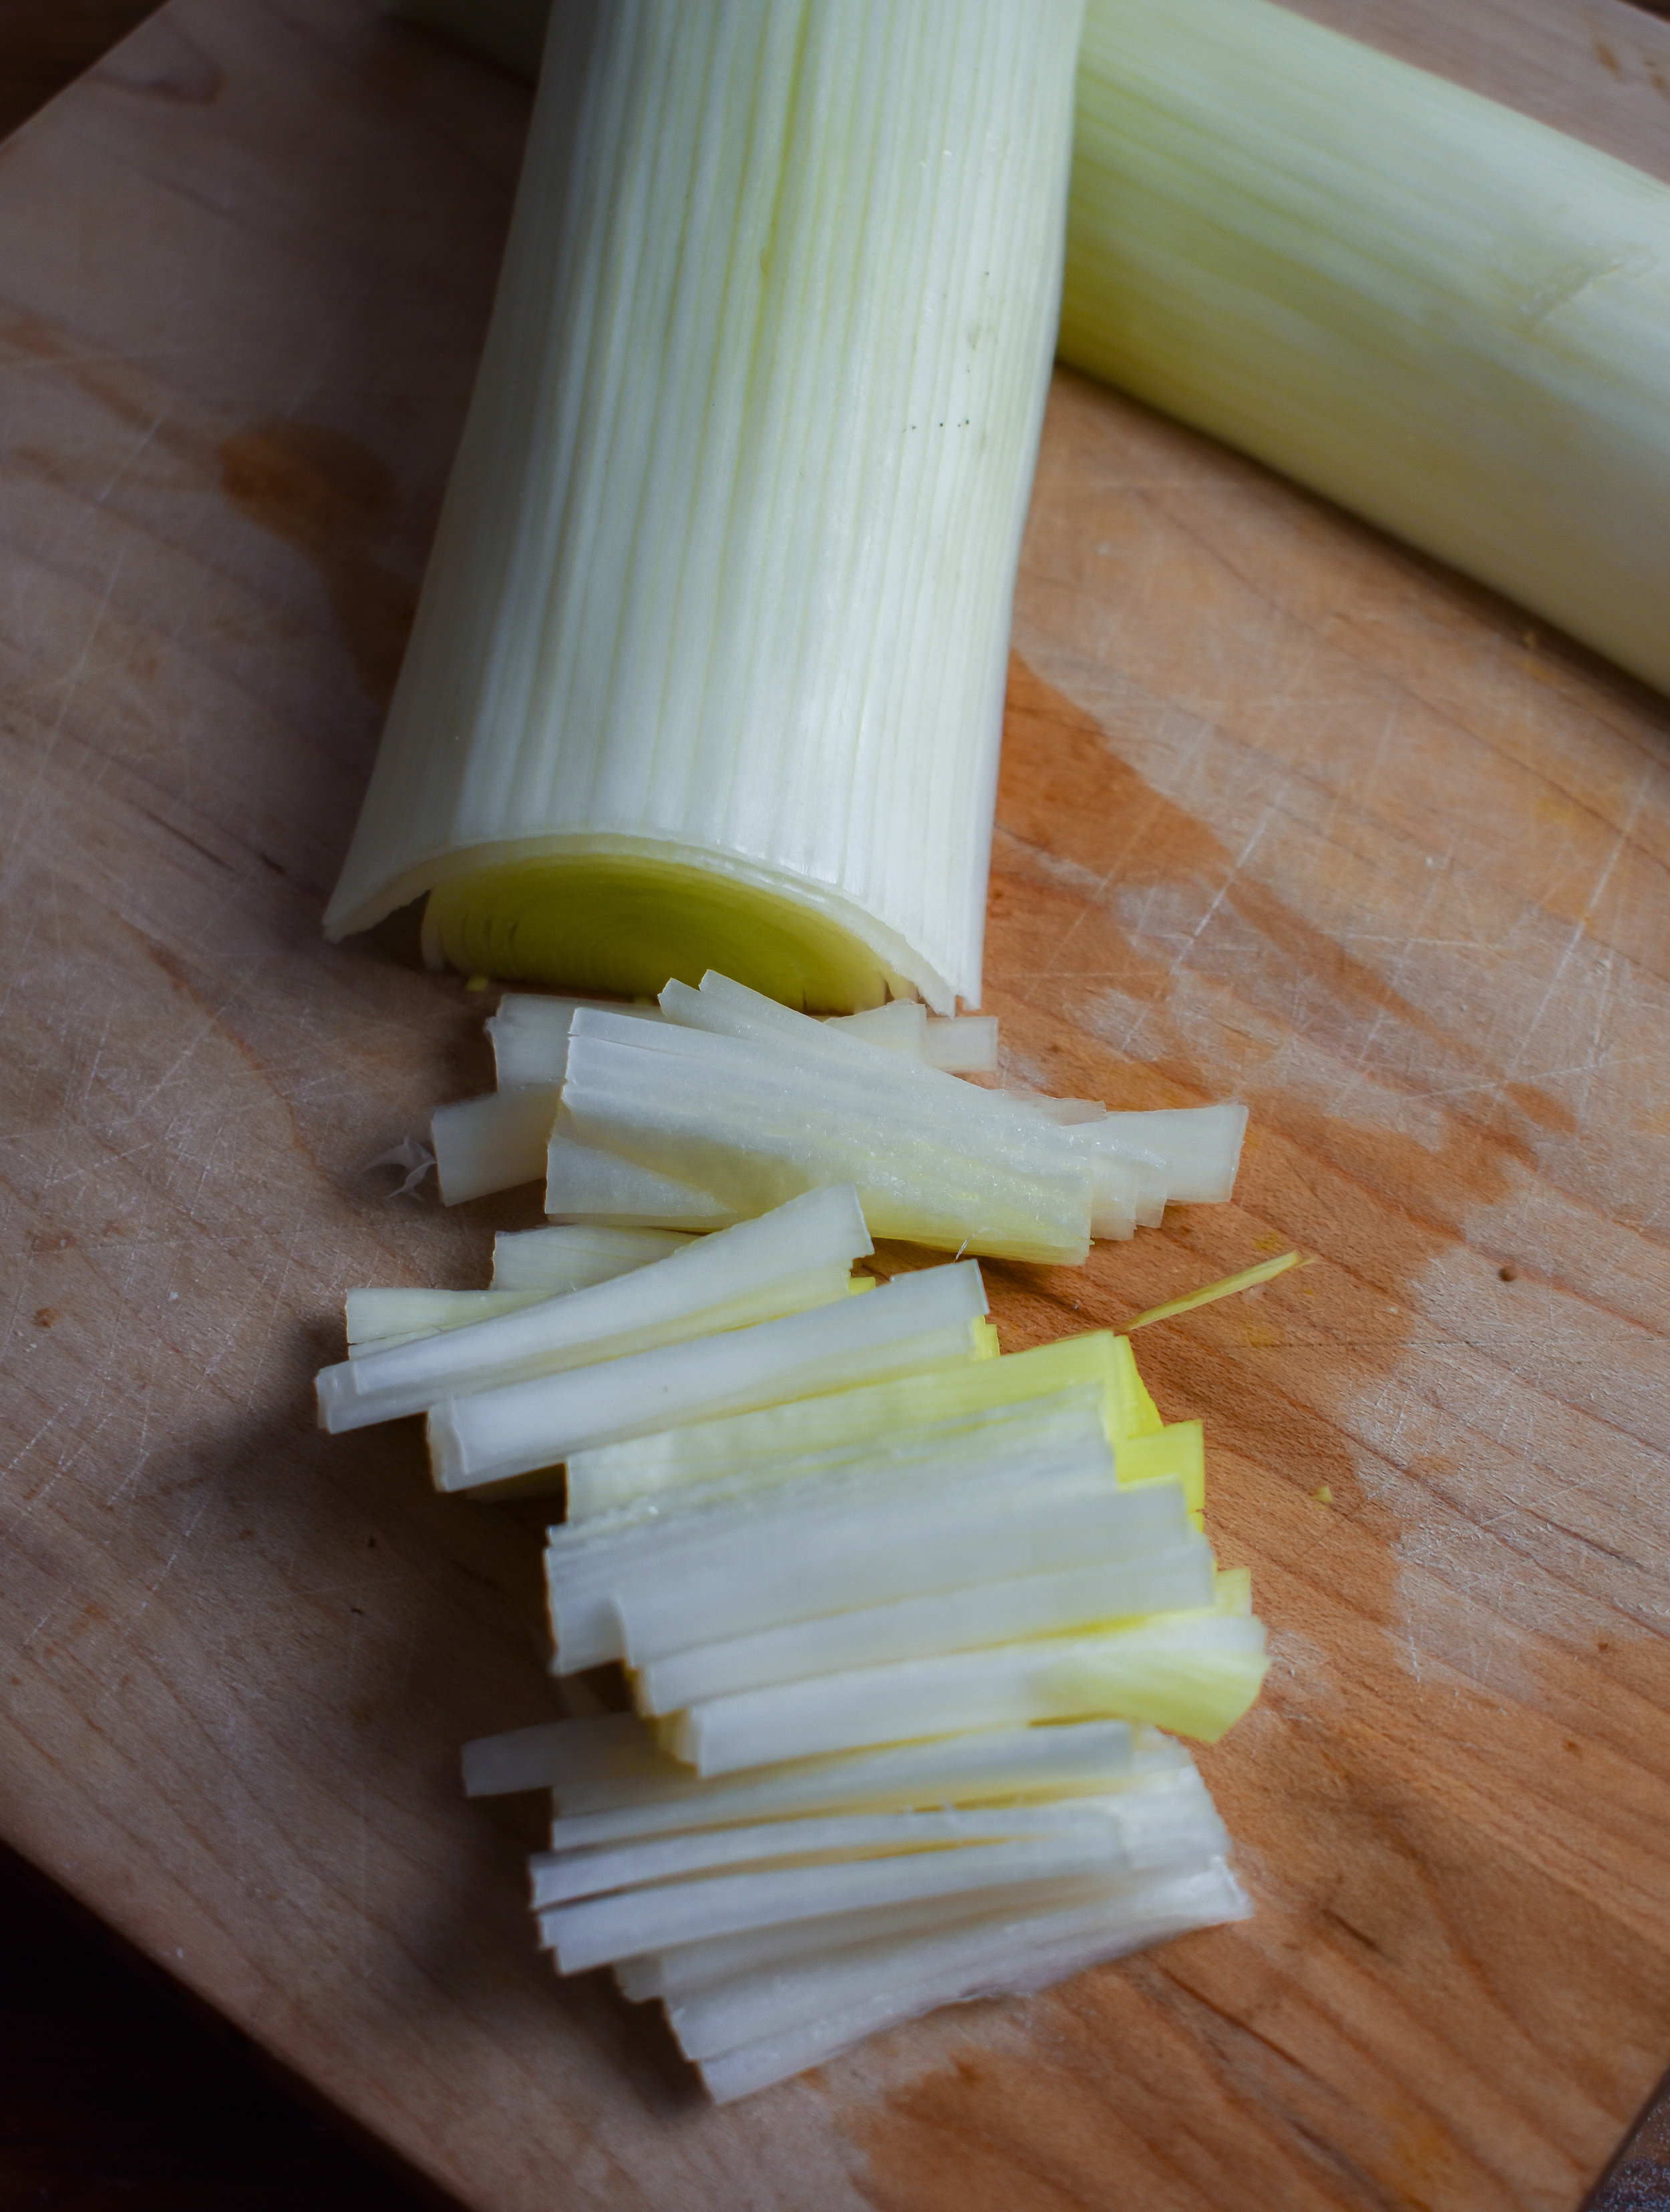 4. For the leeks, place a pan on the stove over medium heat with the oil. To chop the leeks, cut in half, then in 2 inch segments, then cut longwise to make into small matchsticks.